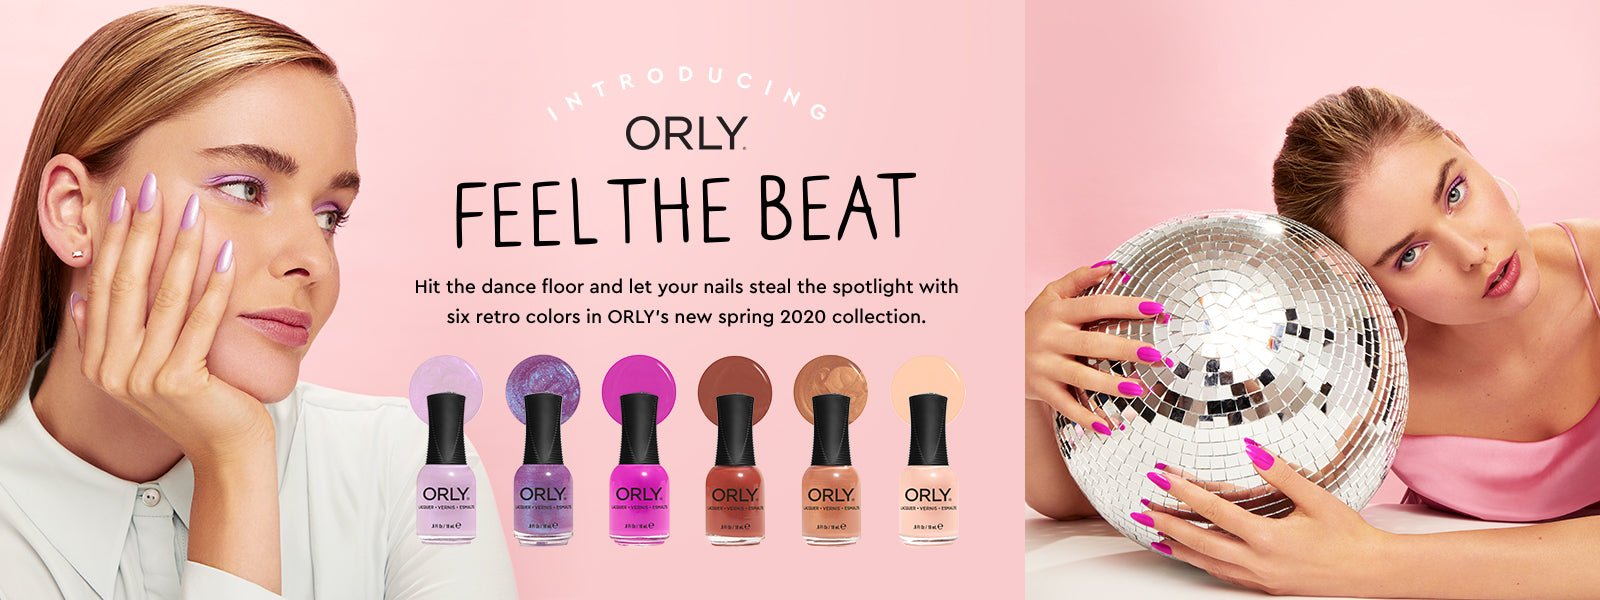 ORLY Spring 2020 Feel The Beat Collection